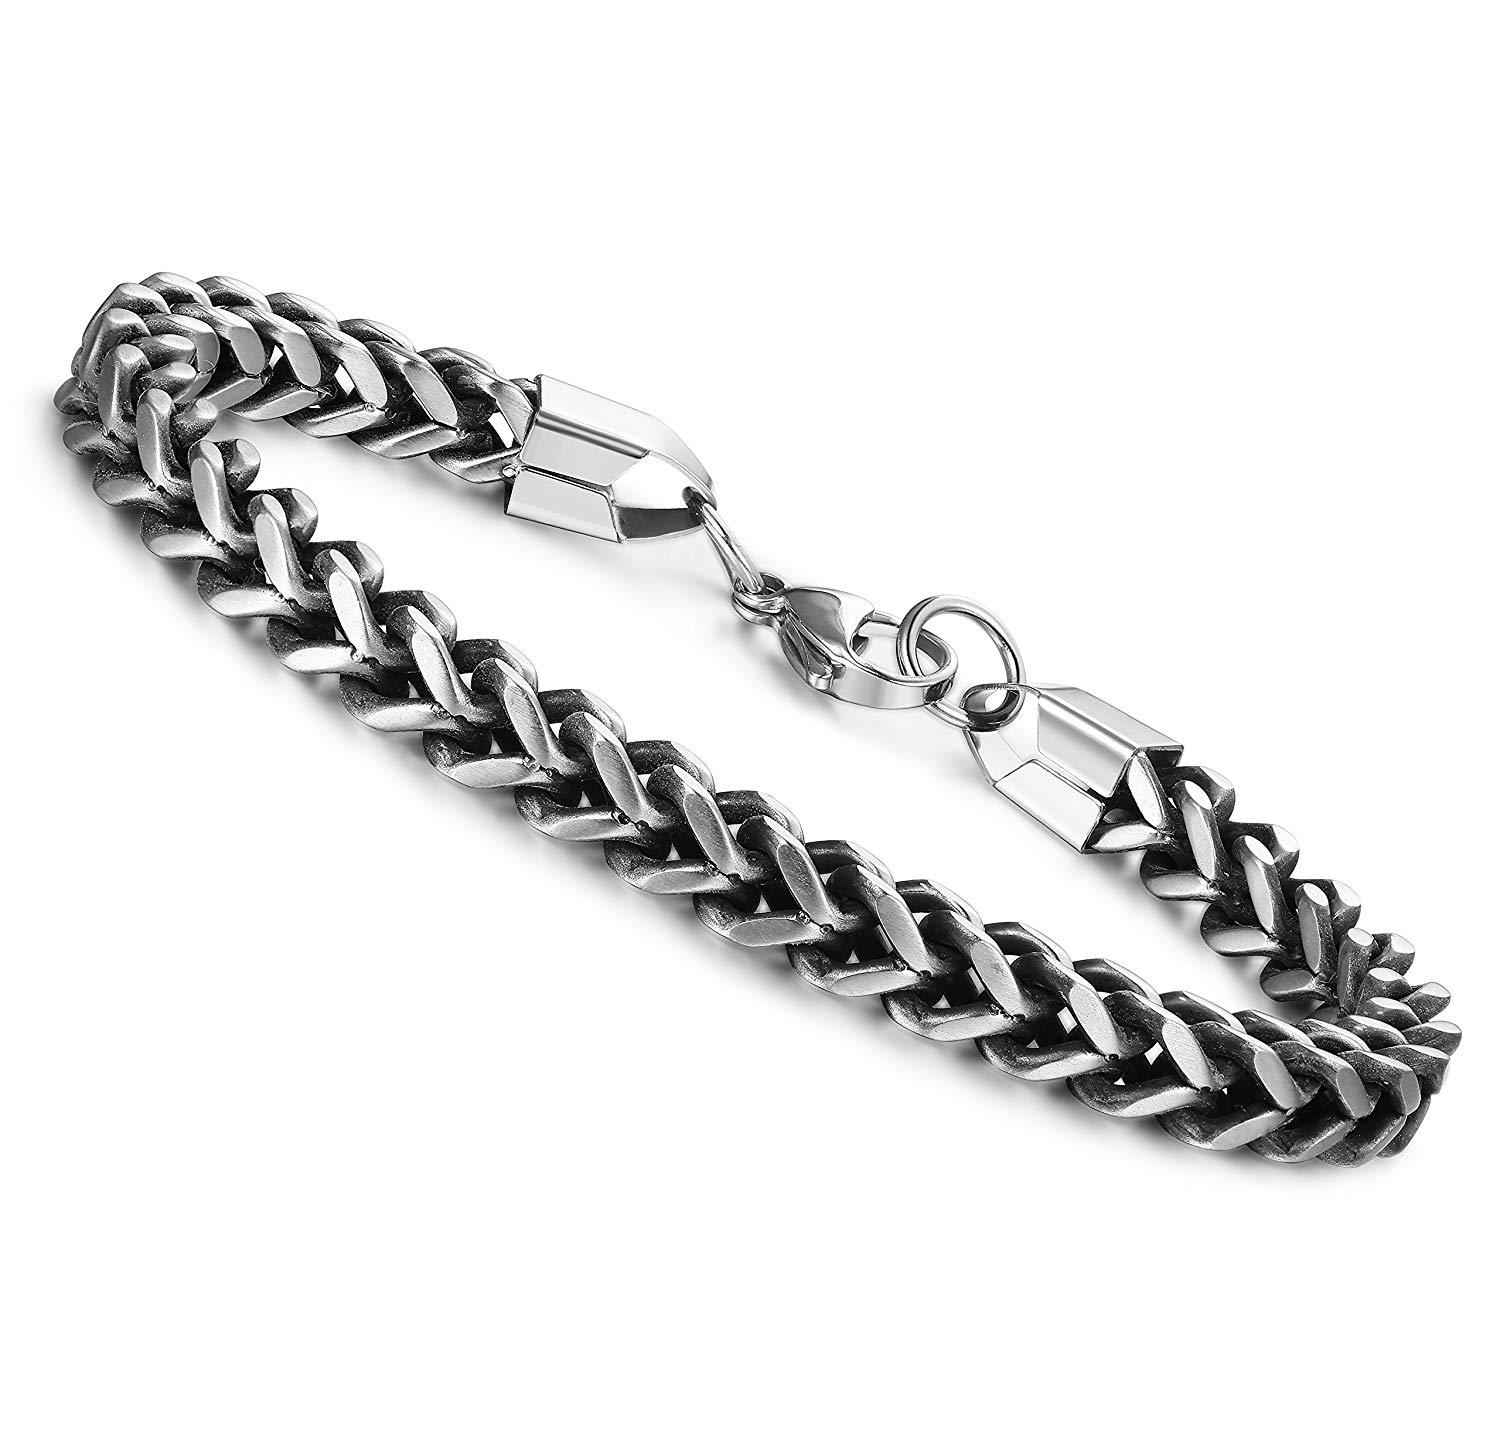 Jstyle Stainless Steel Bracelet for Mens Link Bracelet Jewelry Cool Franco Bracelets for Boys 8-9 Inches